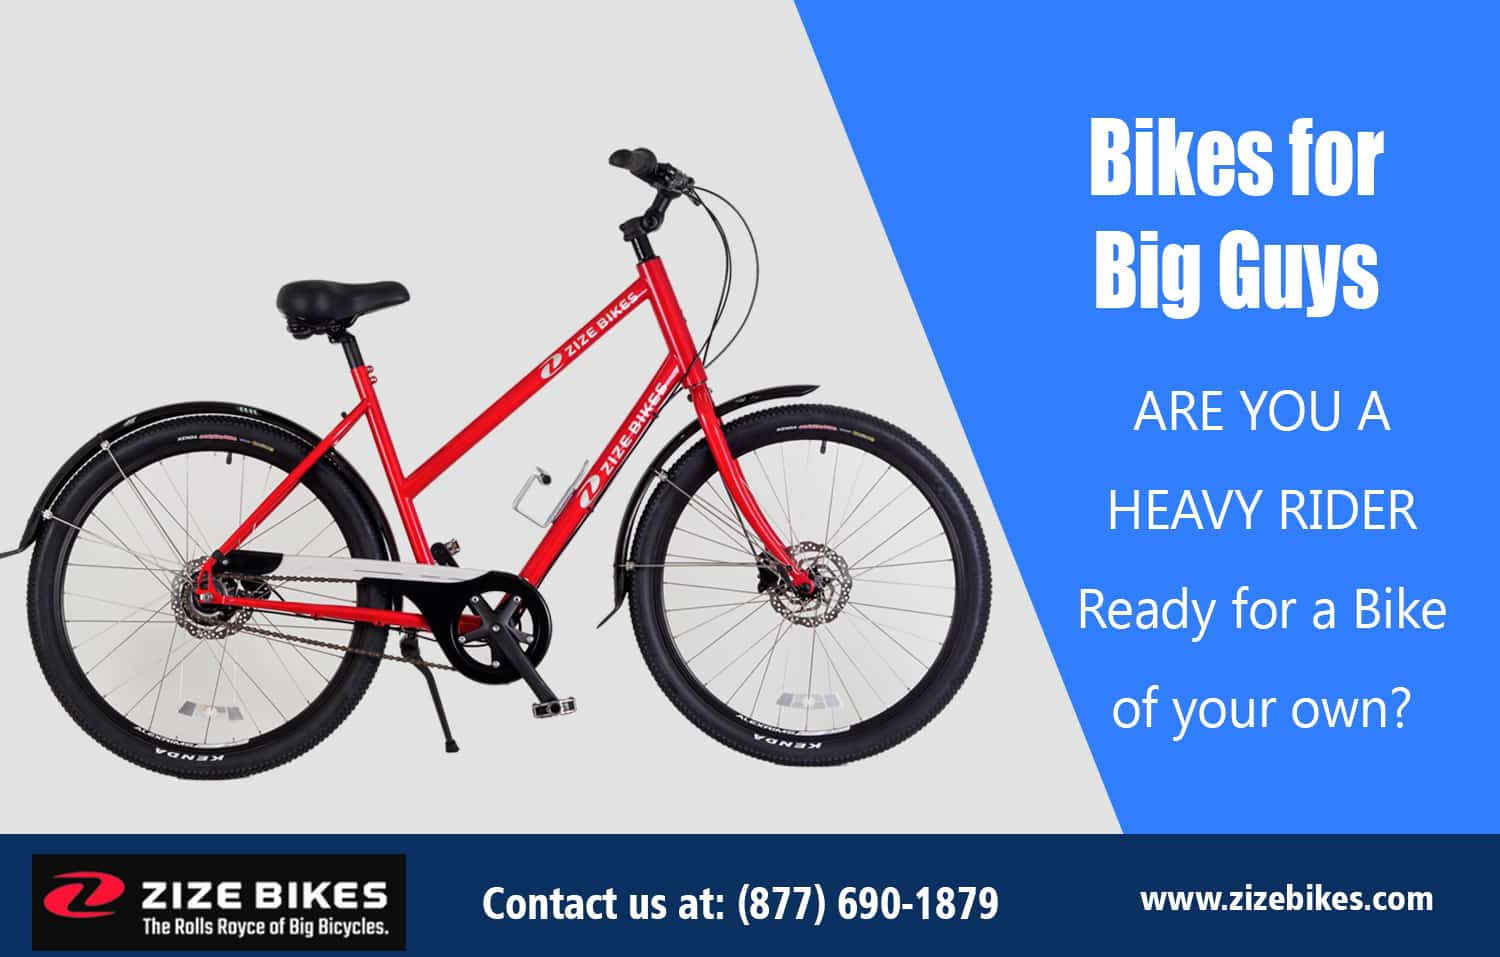 Bikes for big guys